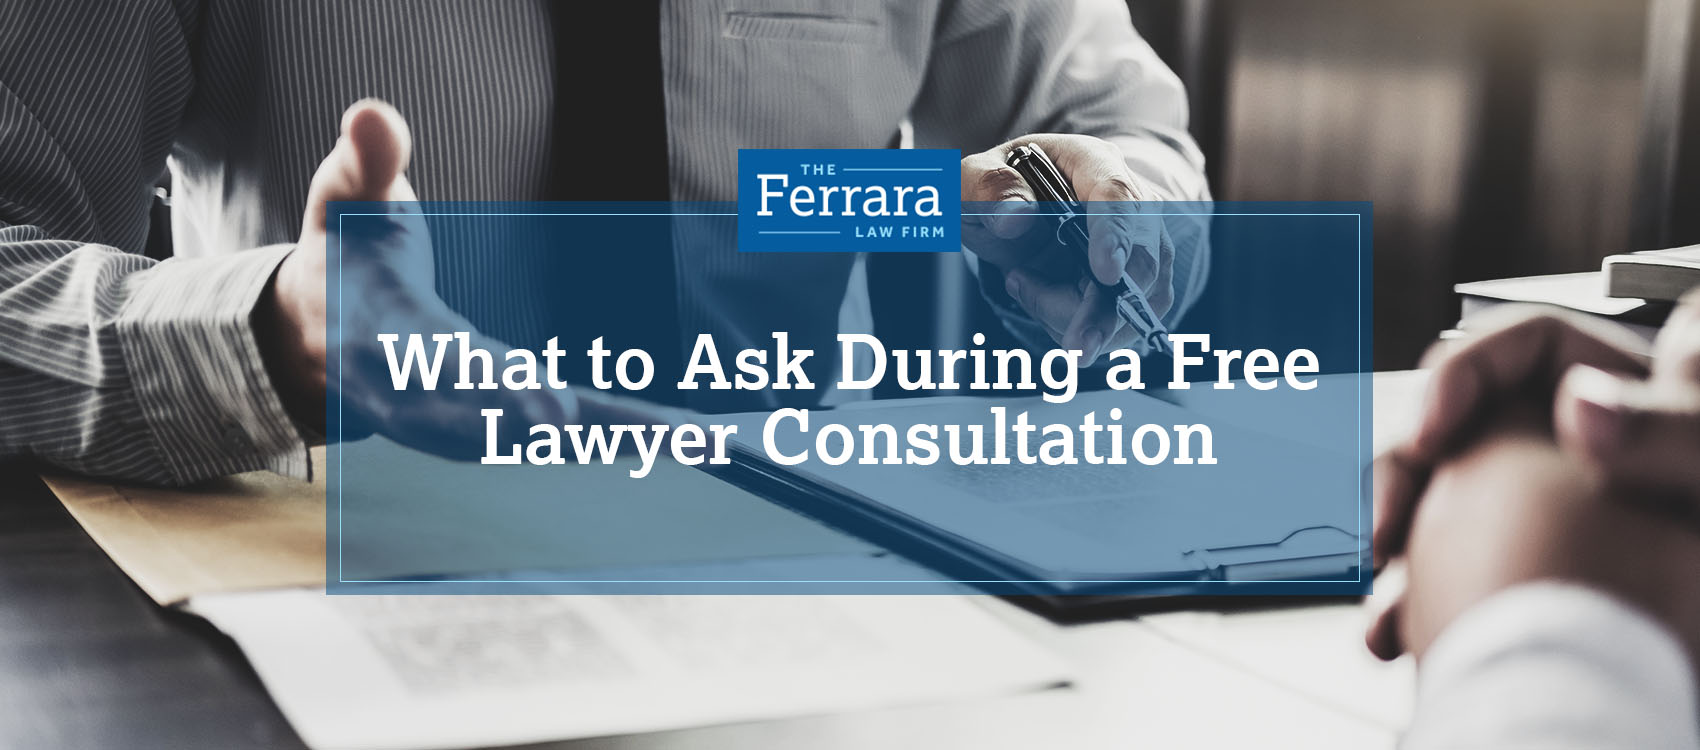 Conversation during a lawyer consultation.